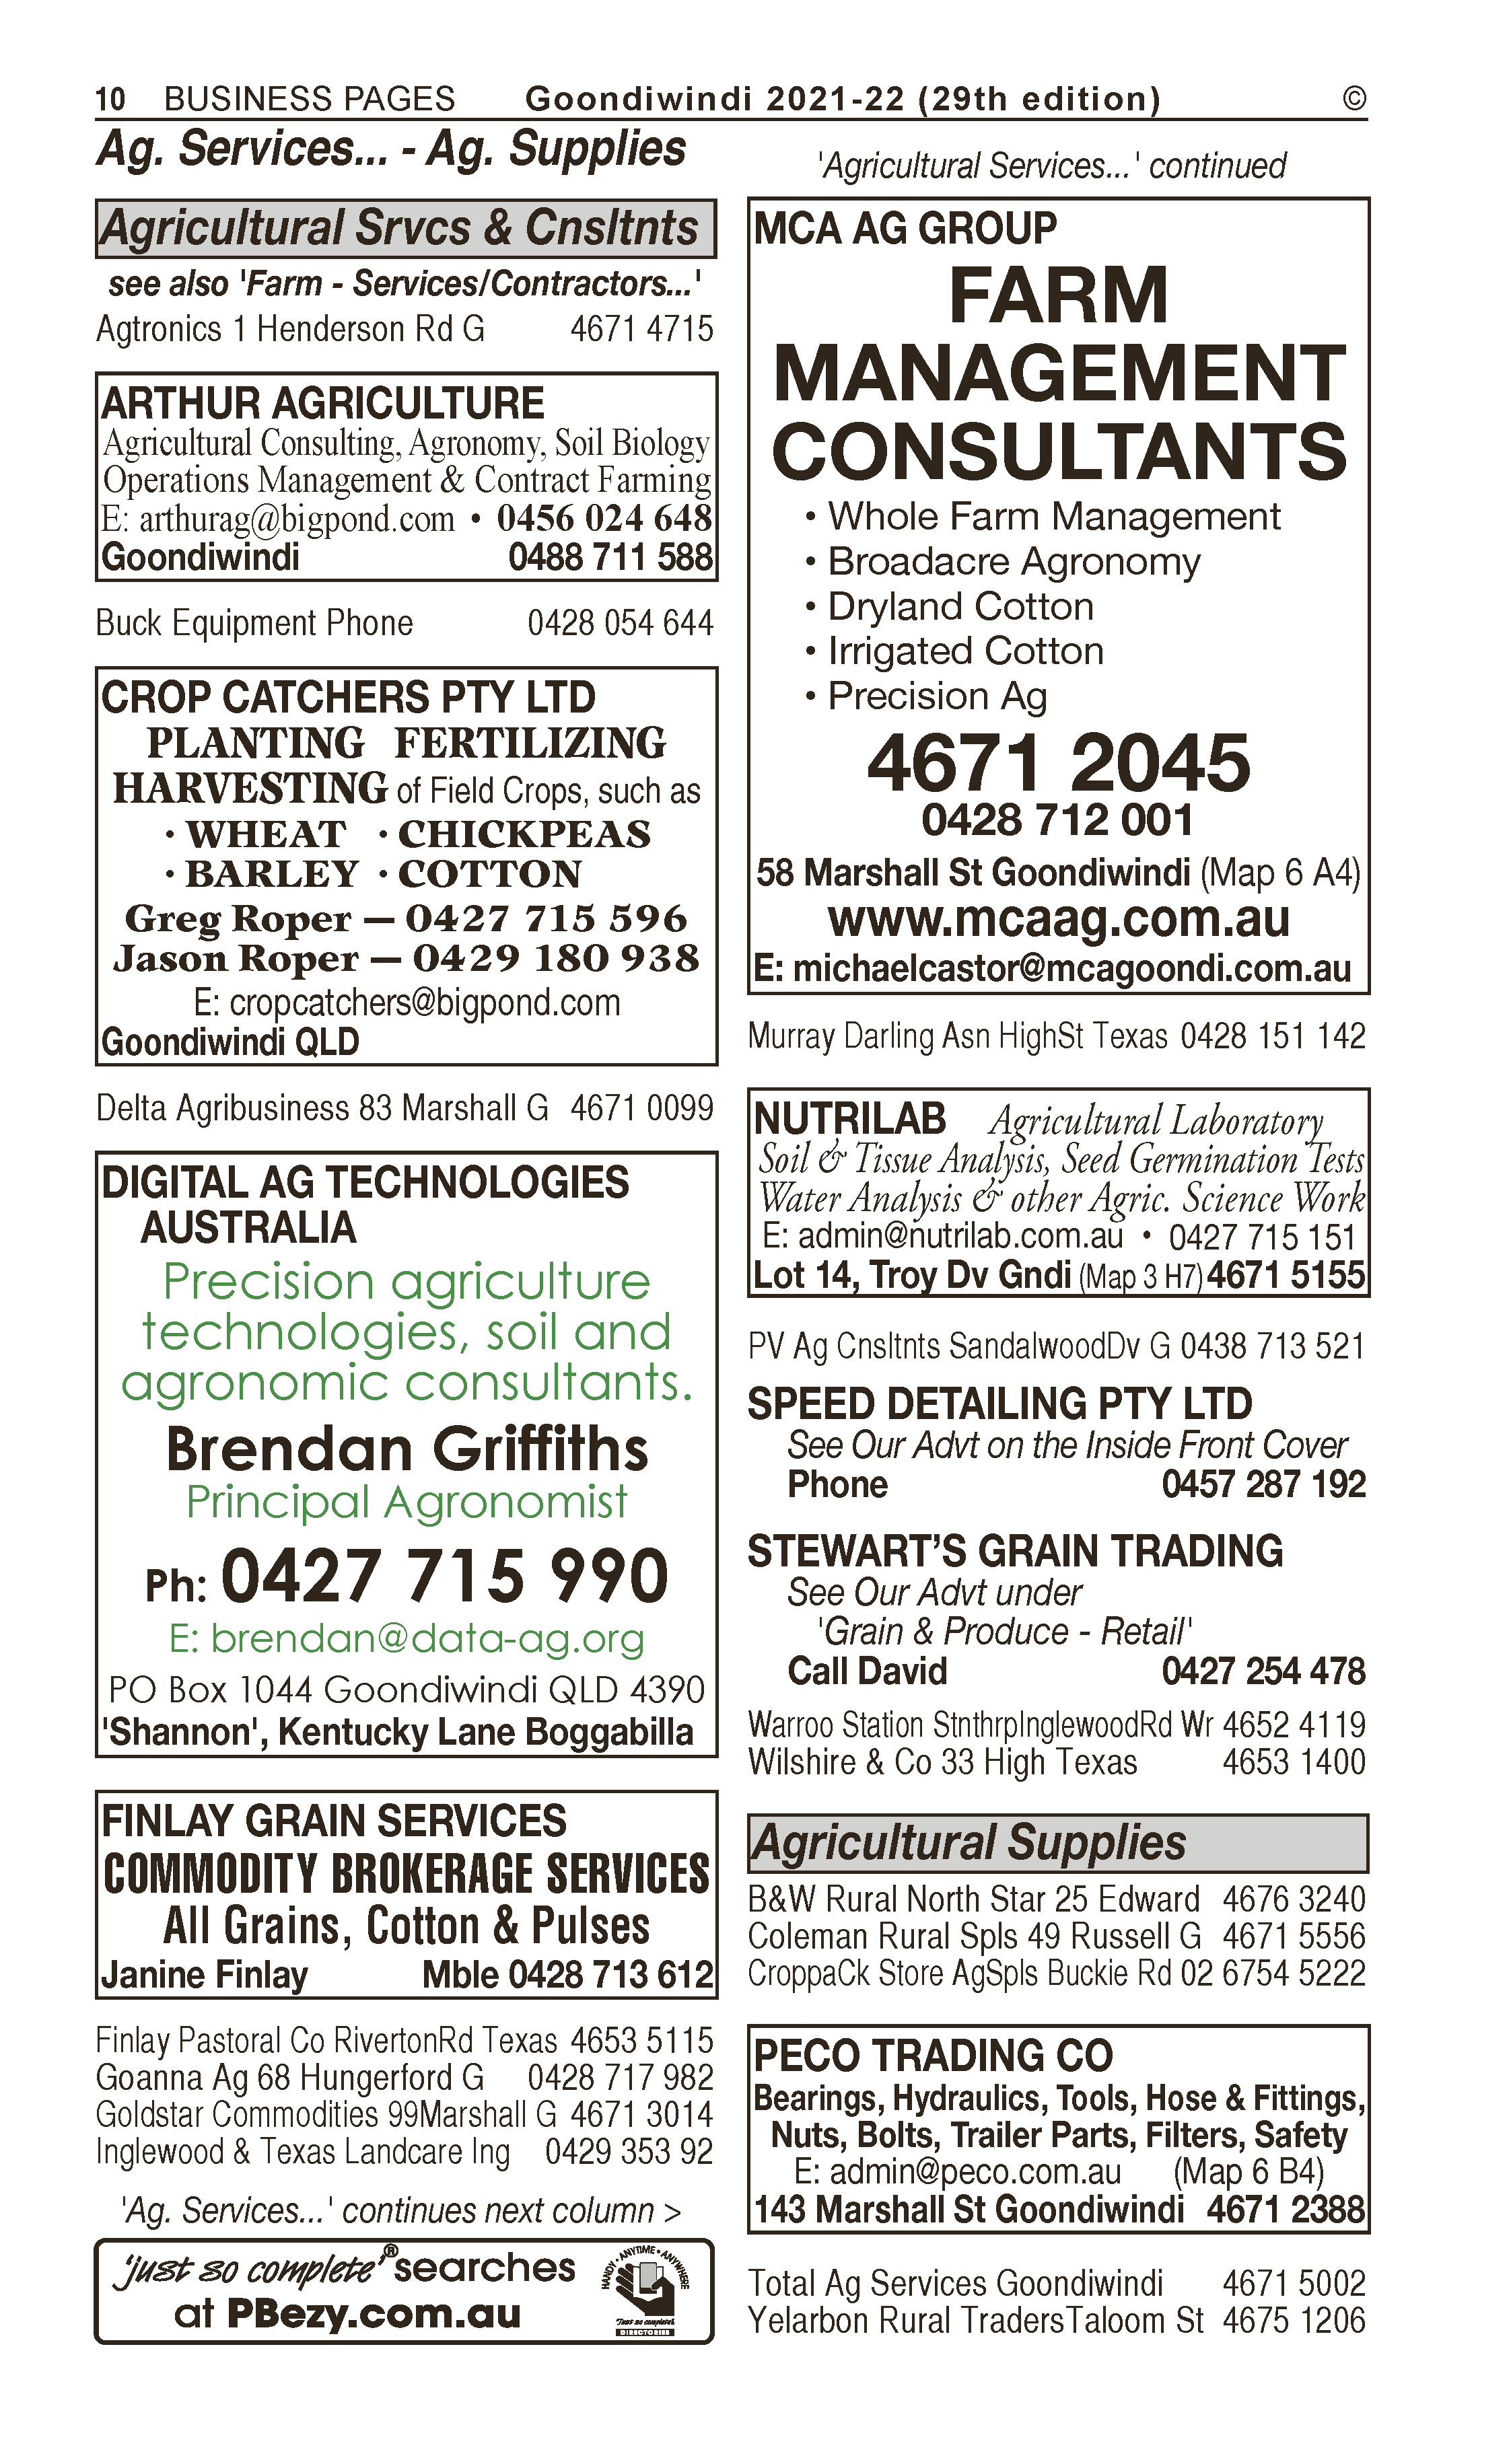 Pacific Seeds | Agricultural – Supplies in Goondiwindi | PBezy Pocket Books local directories - page 10